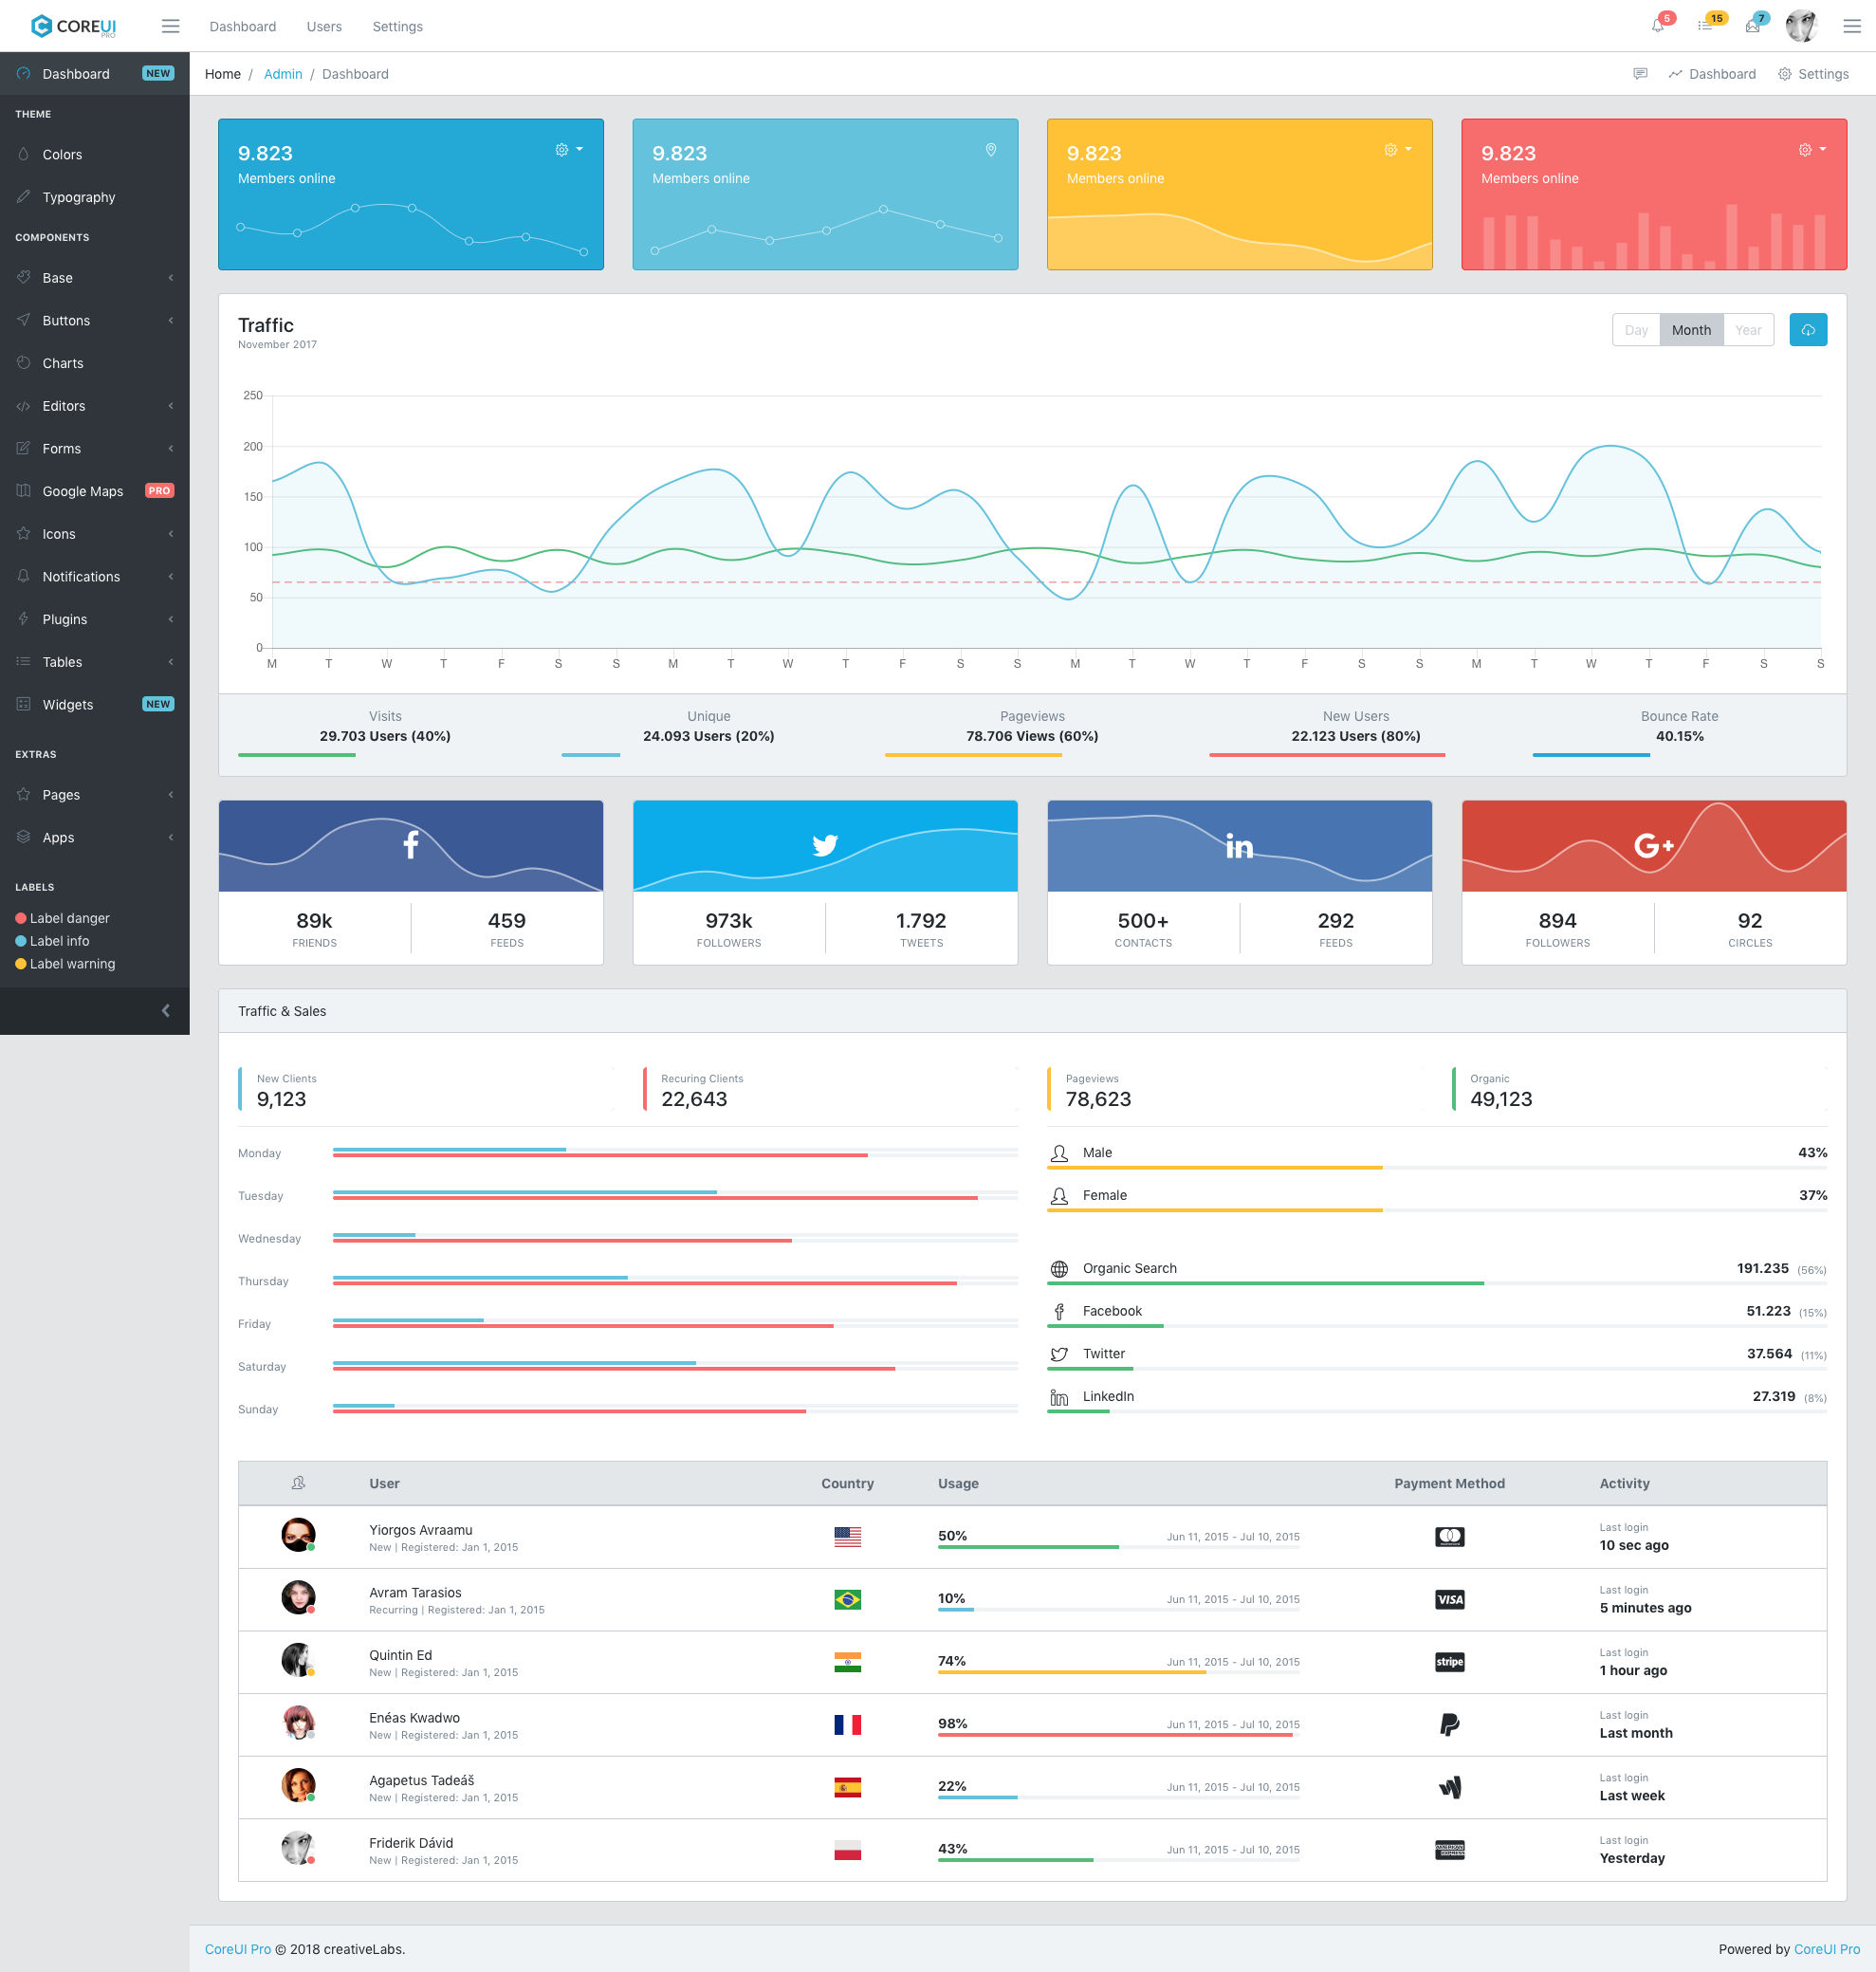 CoreUI is an Open Source Bootstrap Admin Template. It has pure and transparent code and offers 6 versions: HTML5 AJAX, HTML5, Angular 2+, React.js & Vue.js, .NET Core 2. CoreUI built in components and styles allows you to customize your project for almost any device.